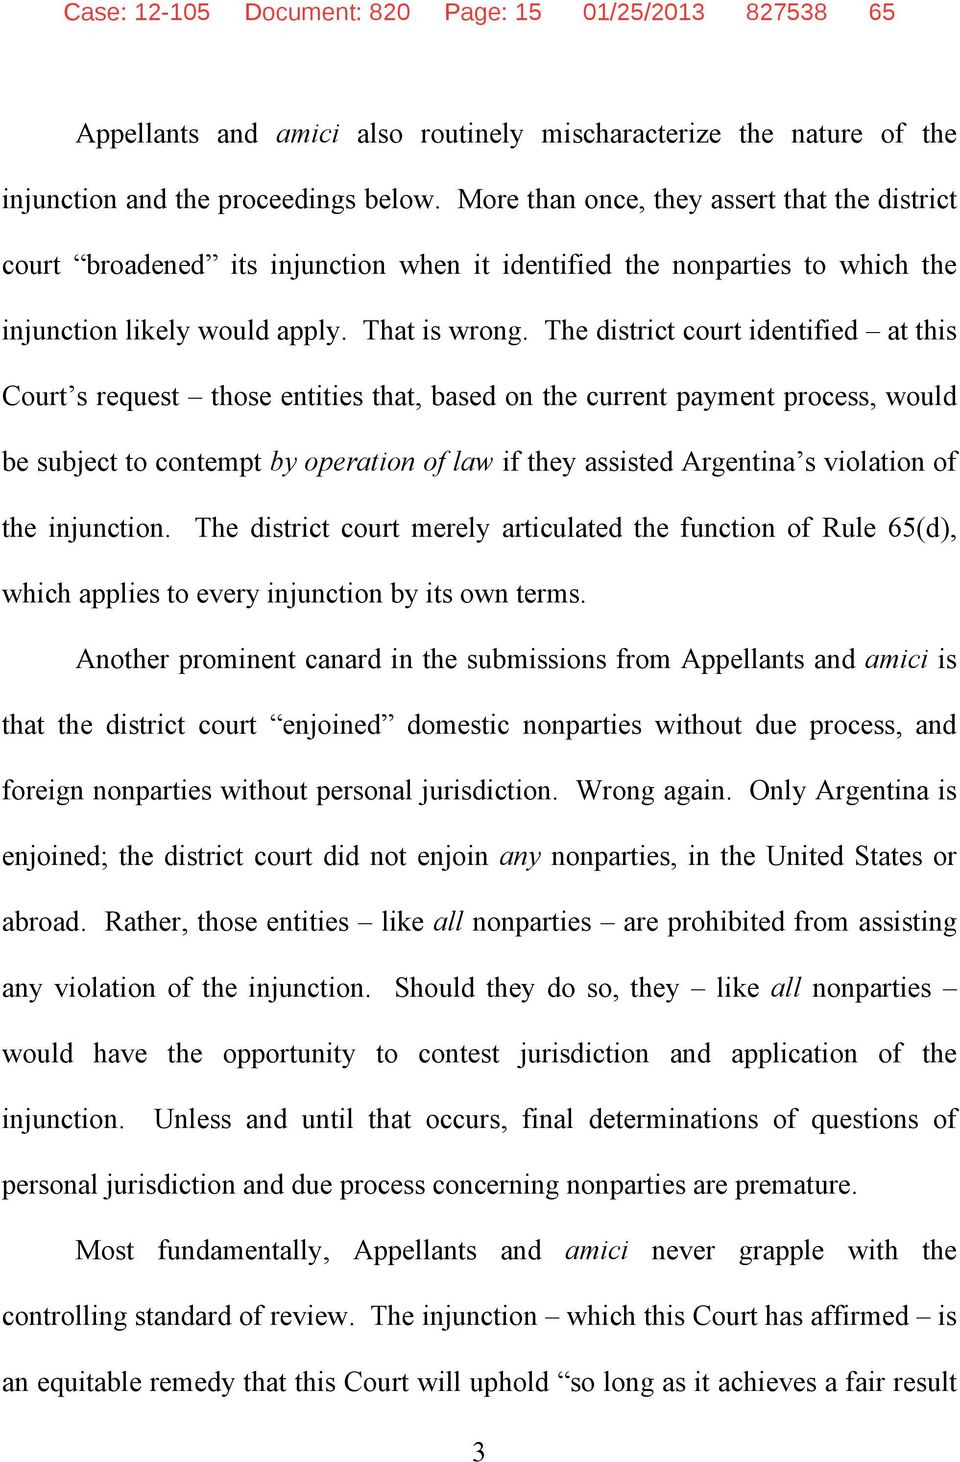 The district court identified at this Court s request those entities that, based on the current payment process, would be subject to contempt by operation of law if they assisted Argentina s